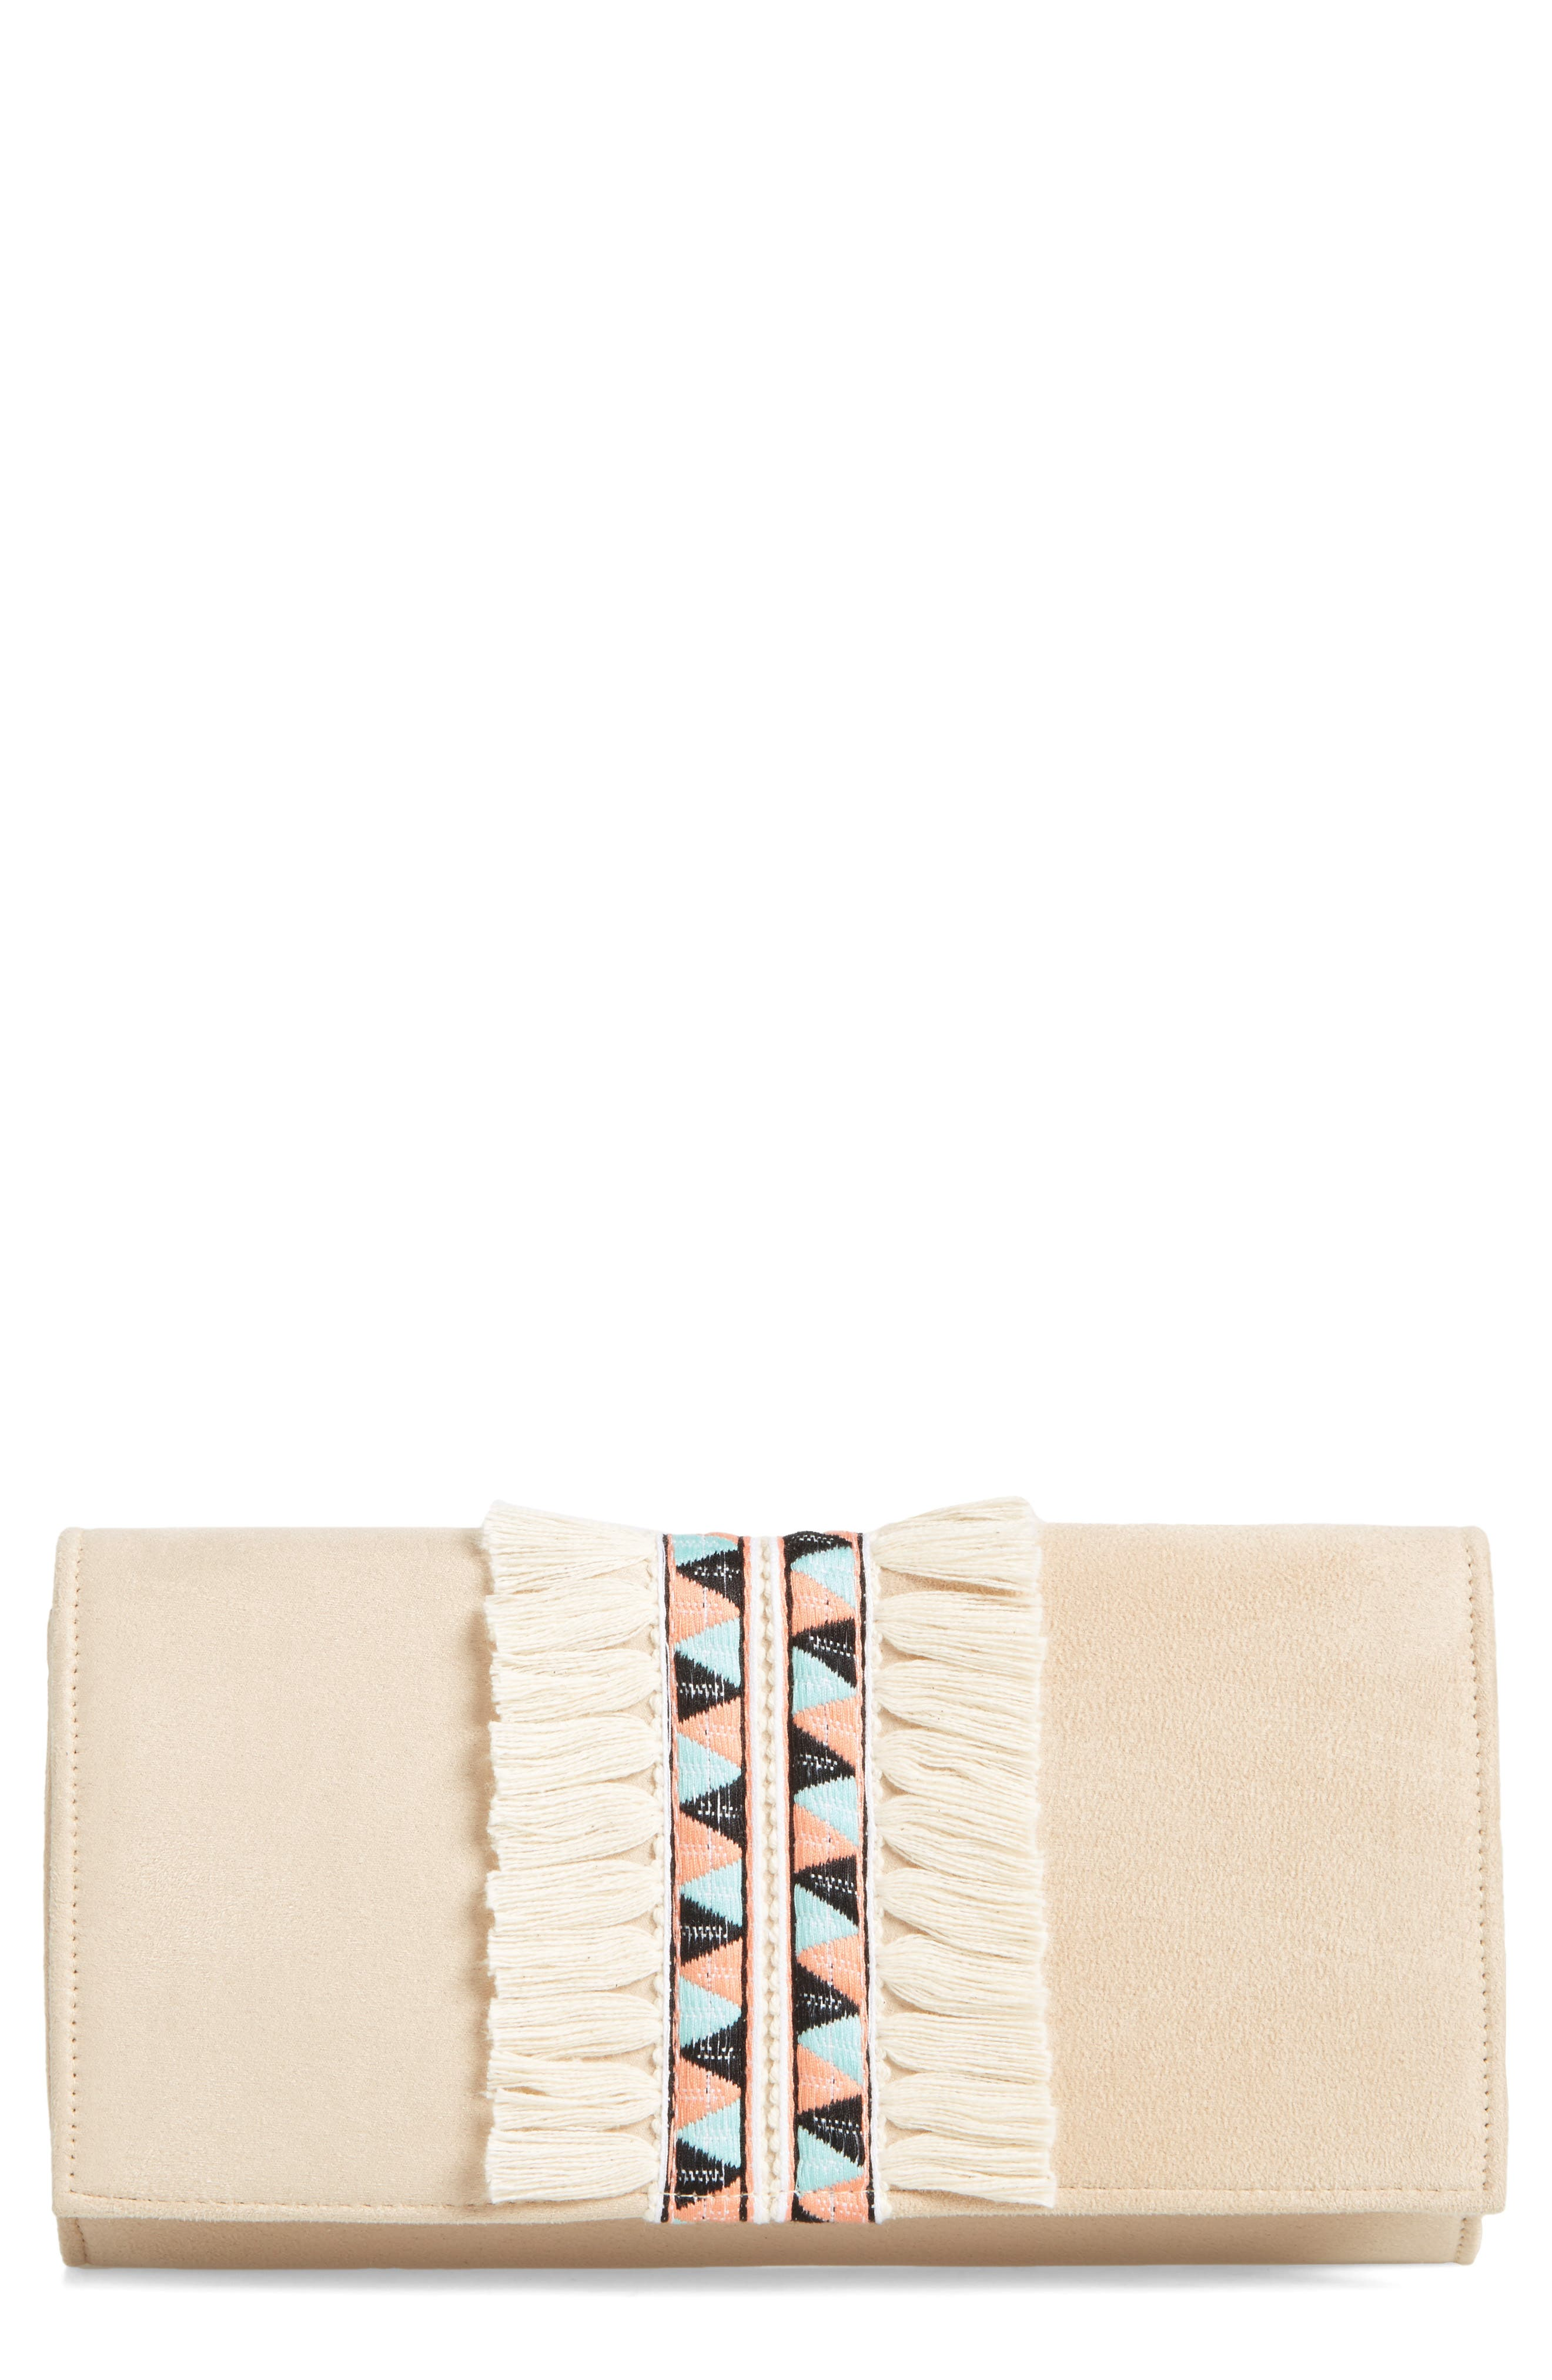 Rada Embroidered Clutch,                         Main,                         color, Sand